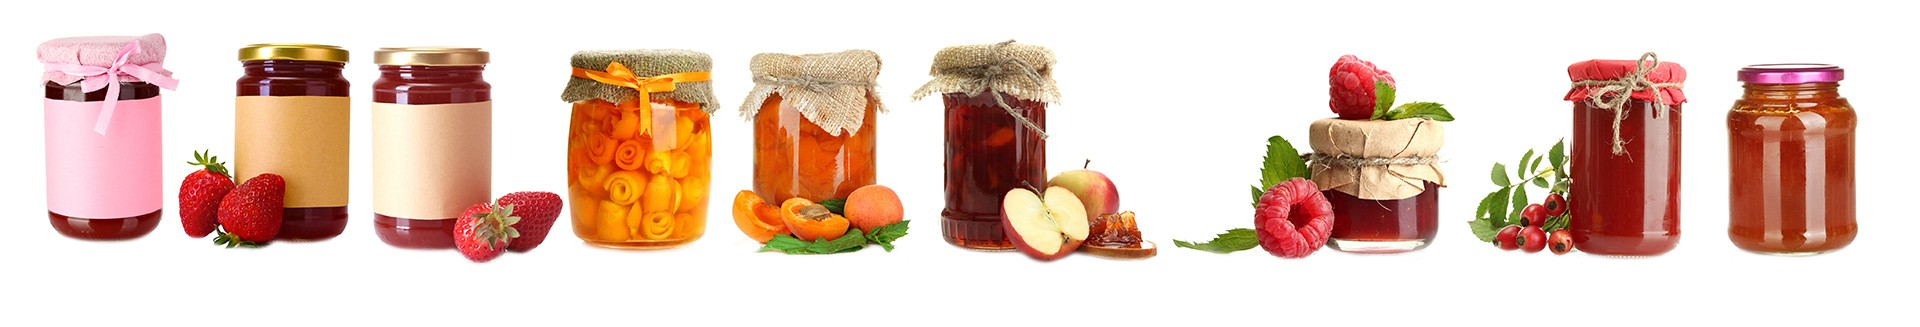 canned-jam-and-fruits